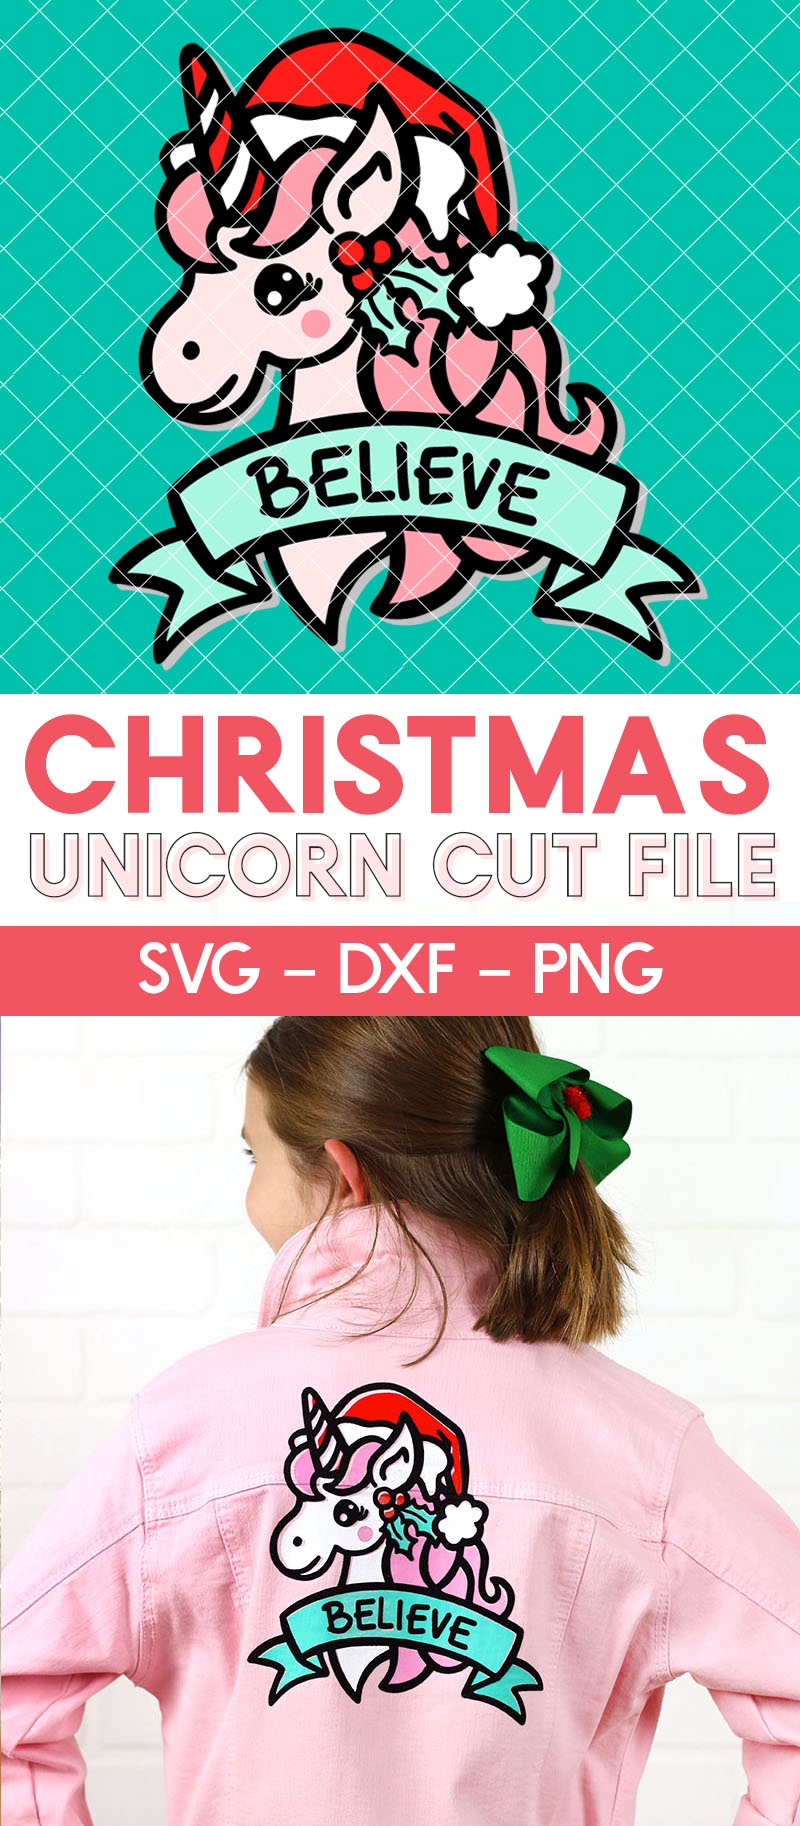 believe christmas unicorn cut file for silhouette or cricut